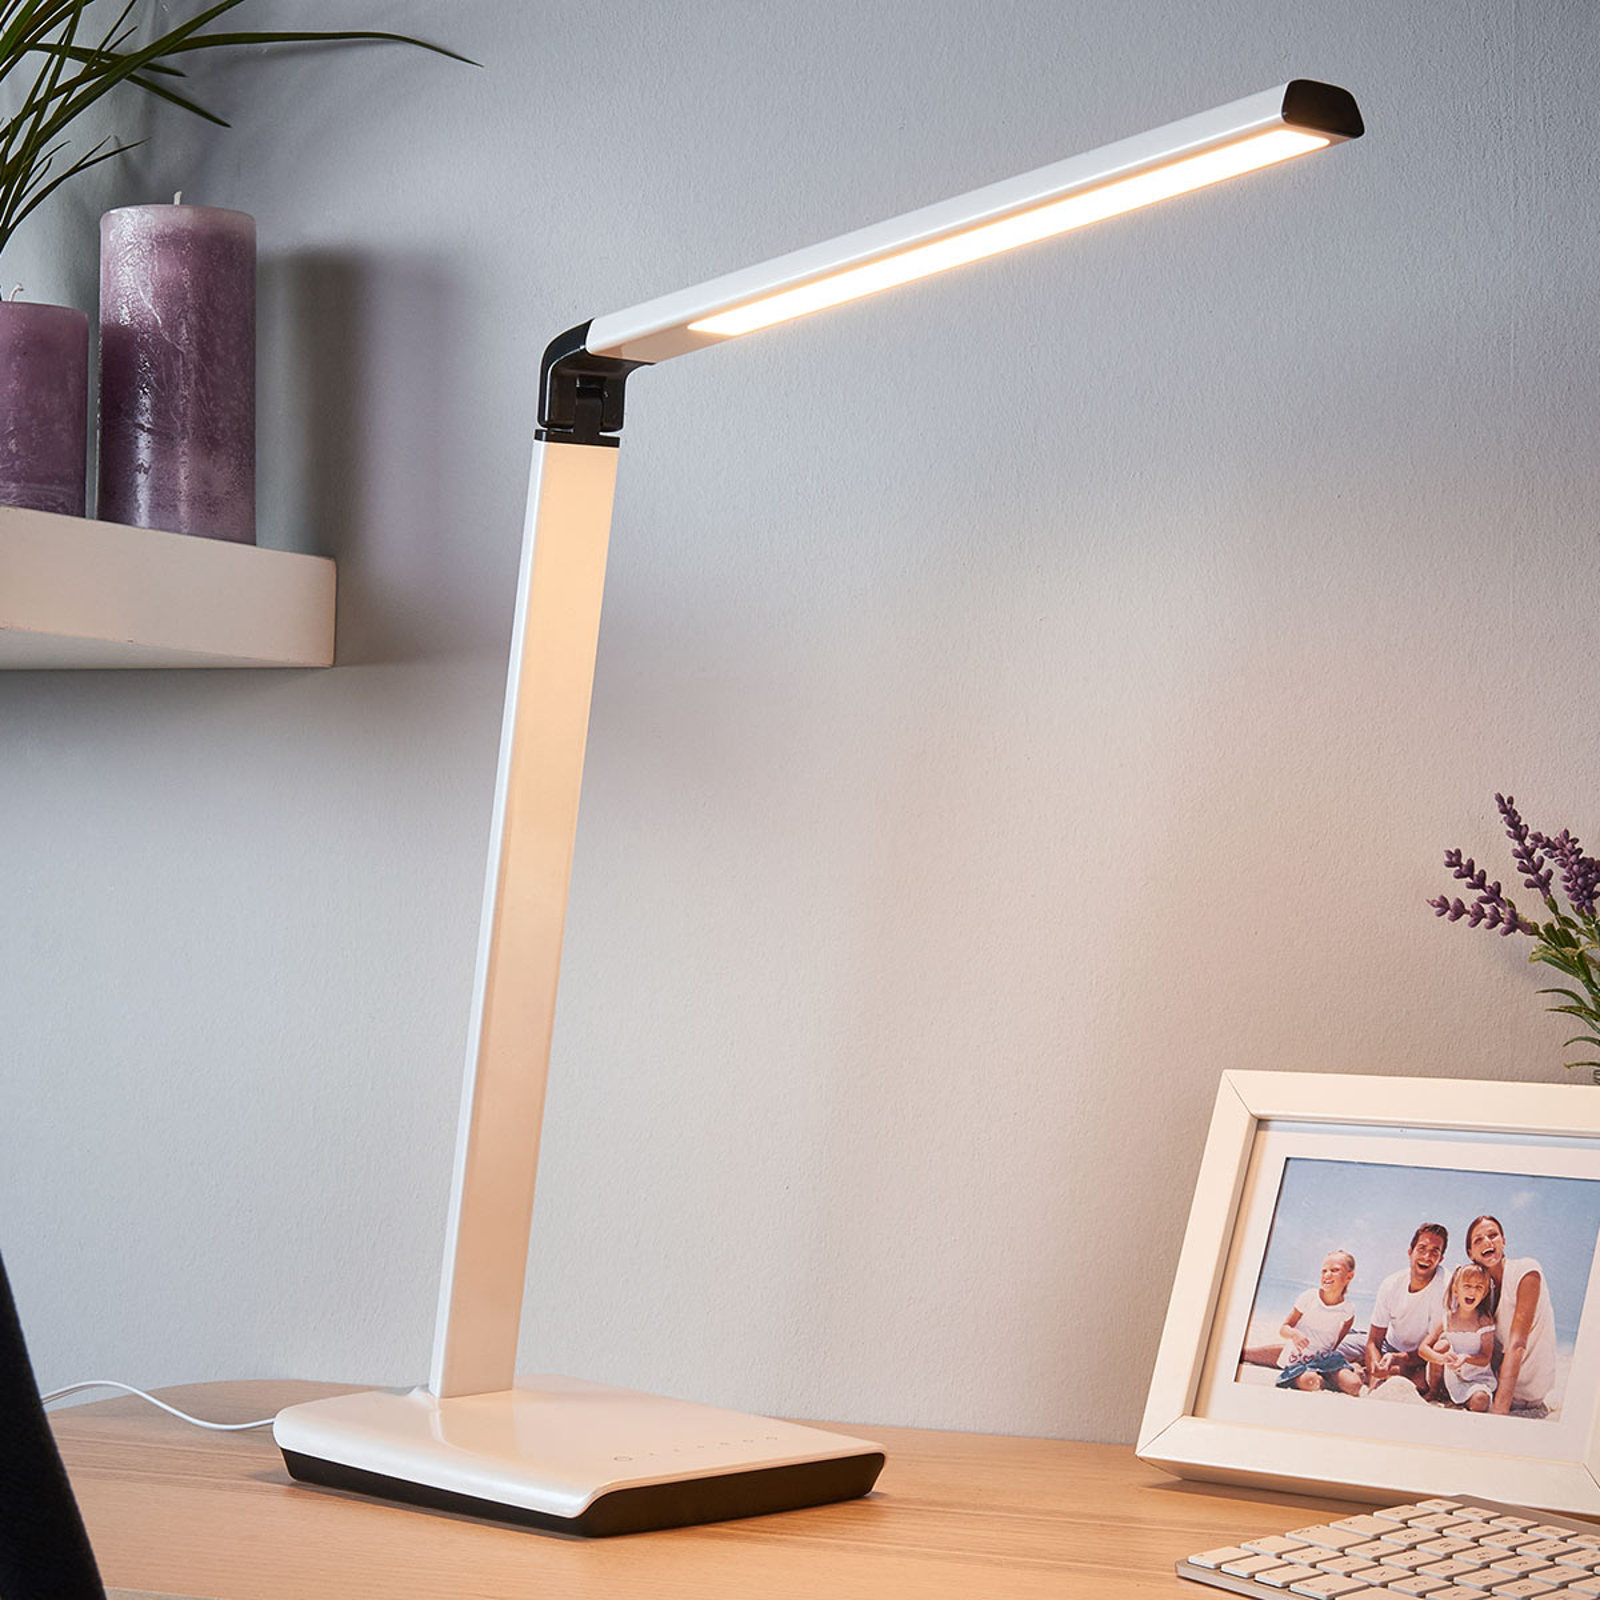 Dimmable LED desk lamp Kuno with USB port_9643034_1